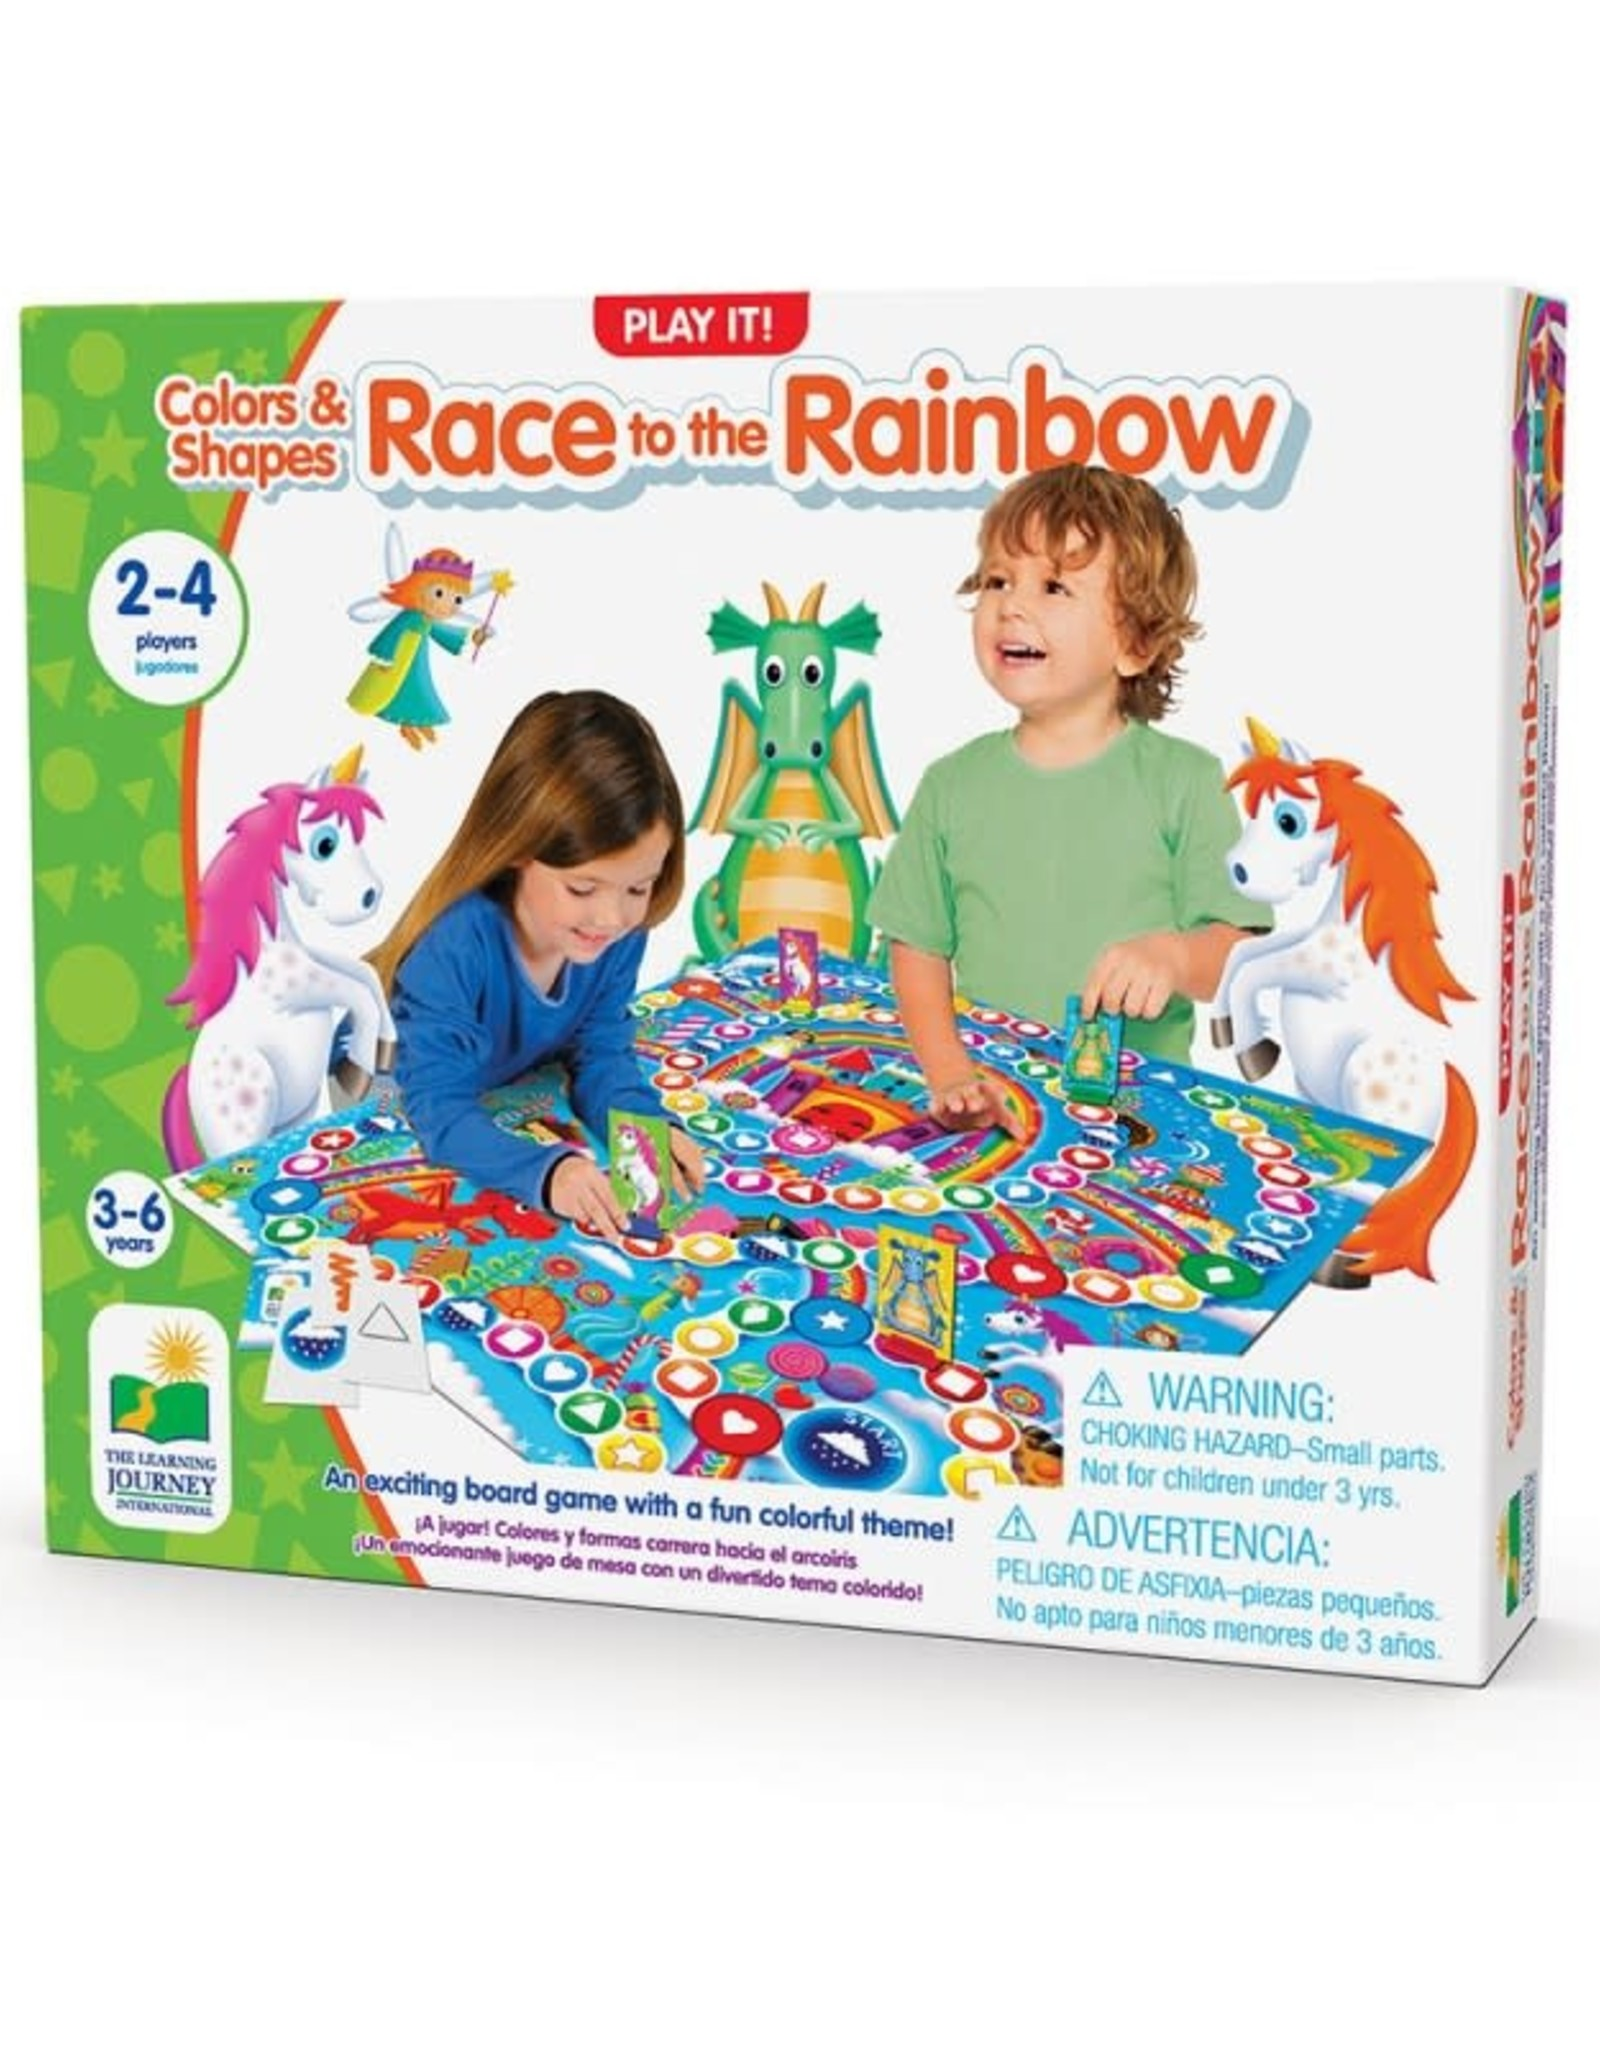 The Learning Journey Race to the Rainbow